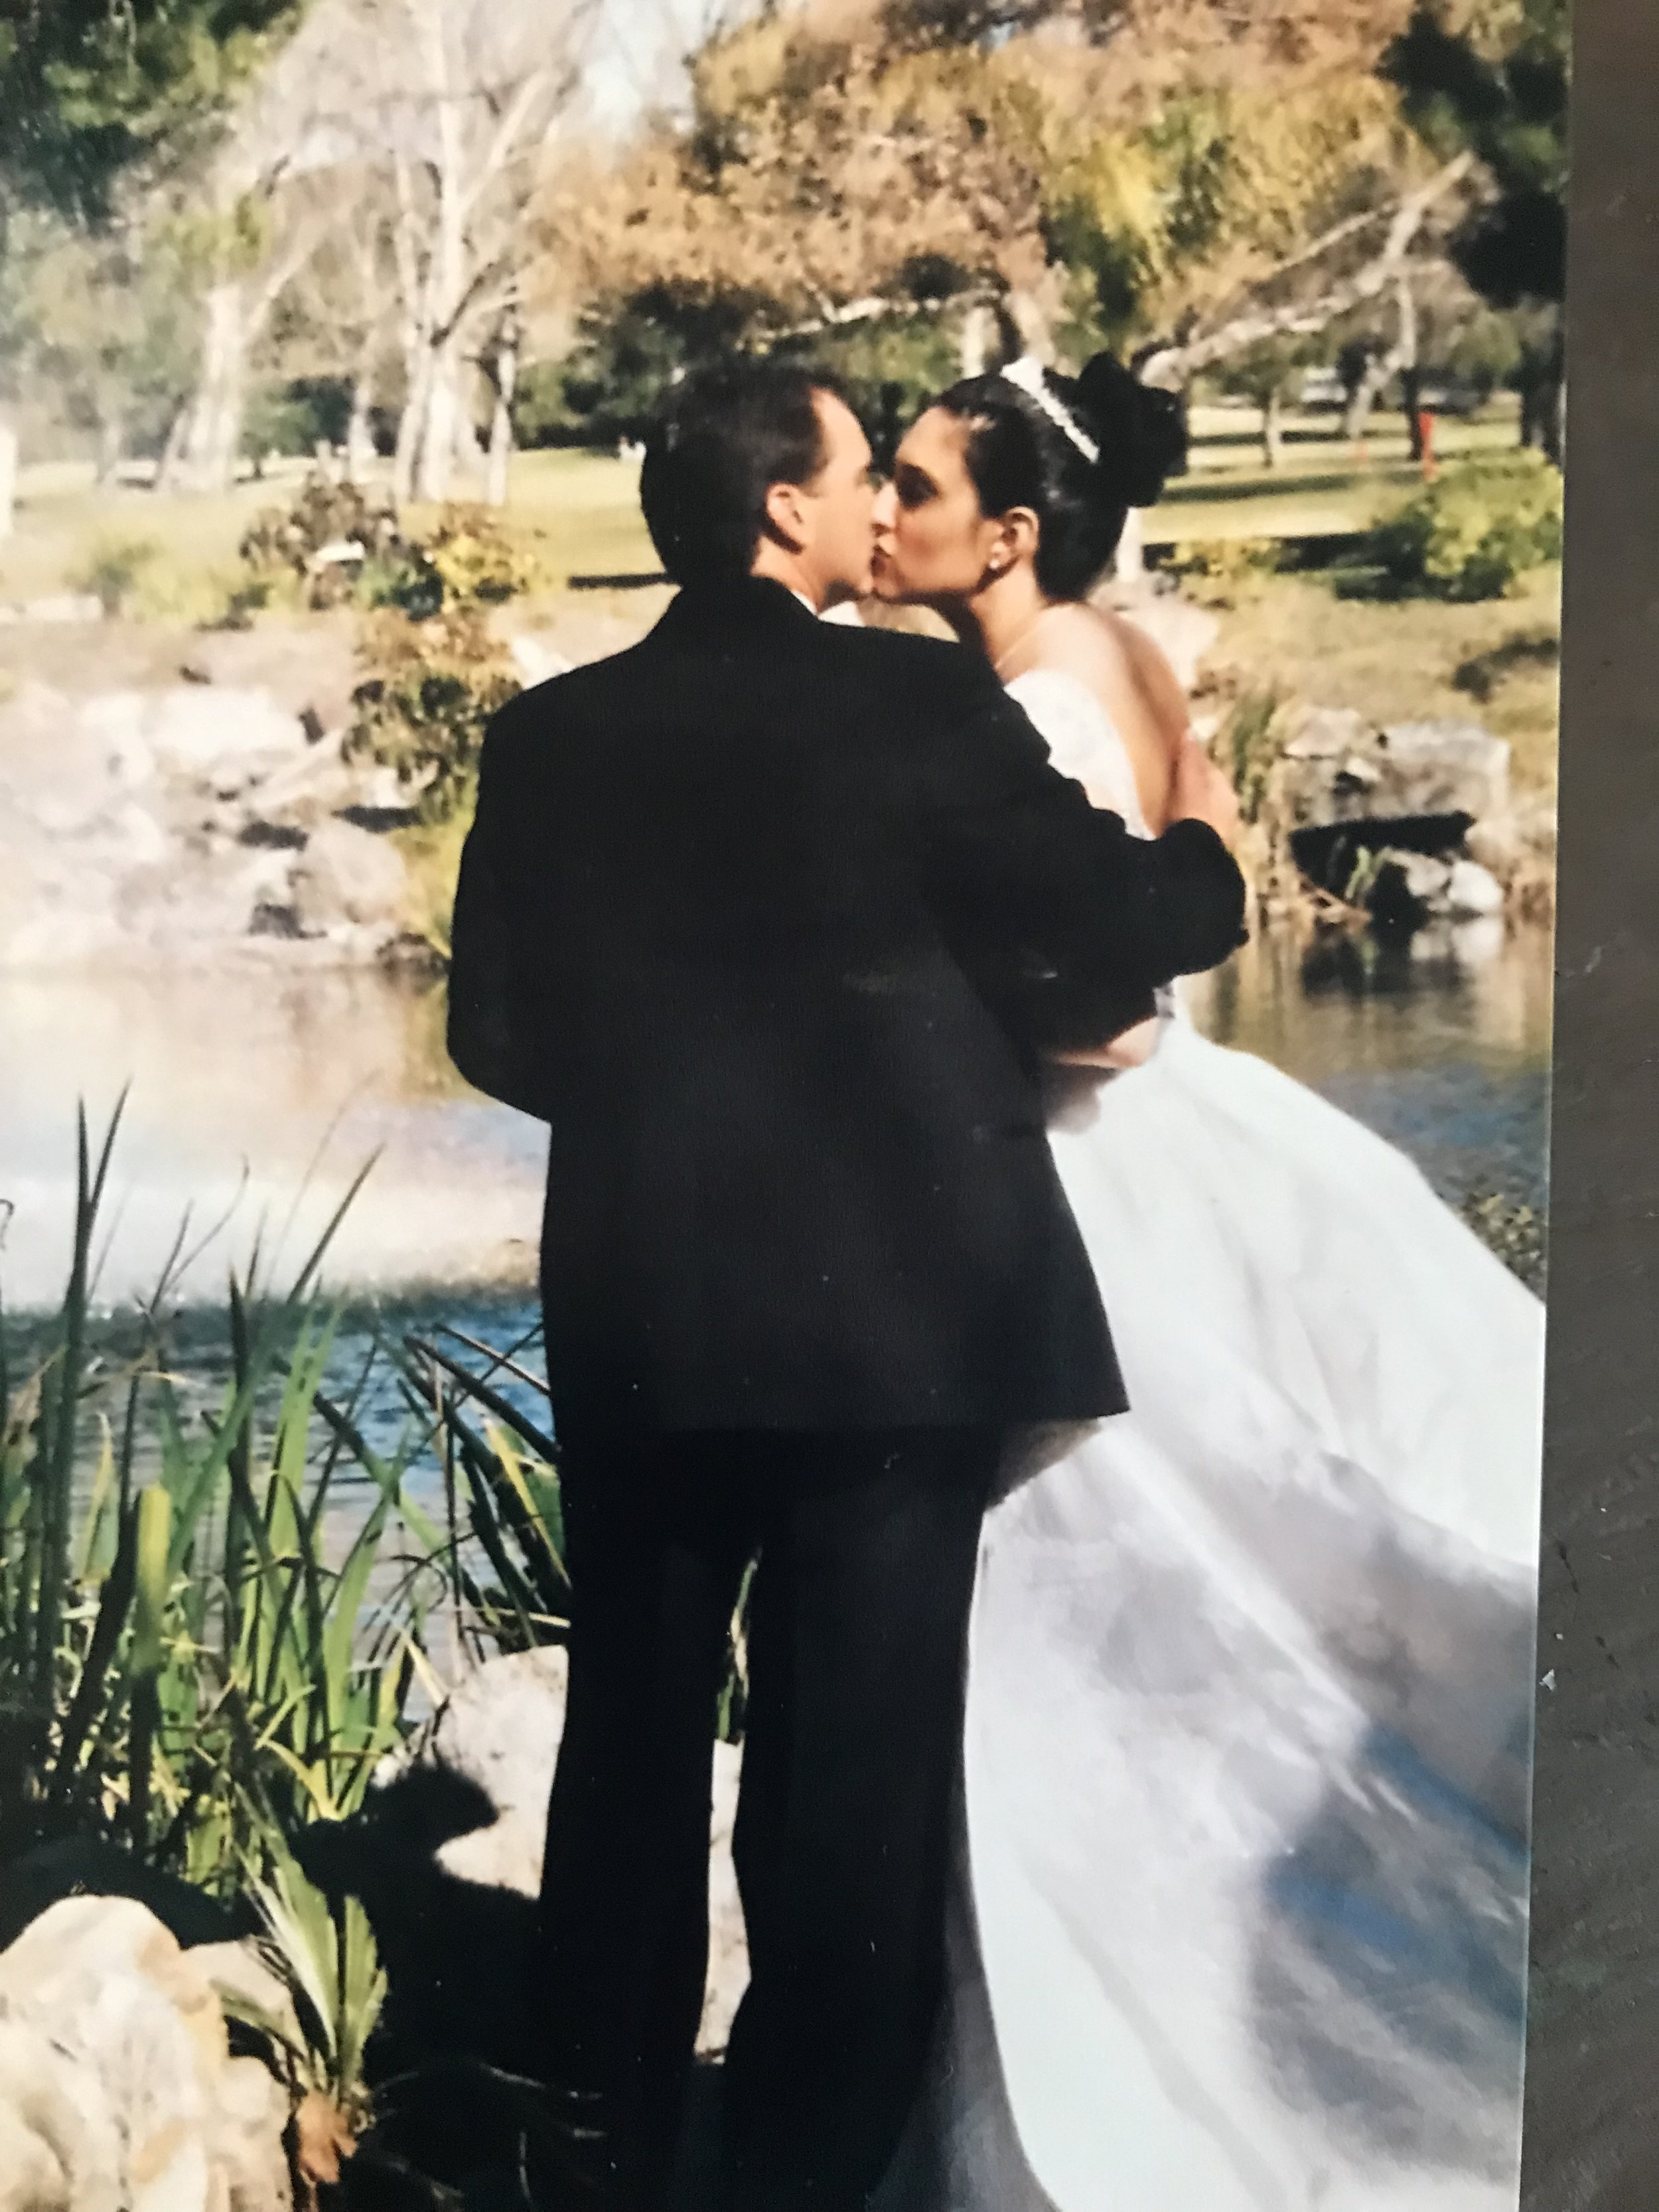 Pastor Mike shares a lakeside kiss with his beautiful bride Francheska.